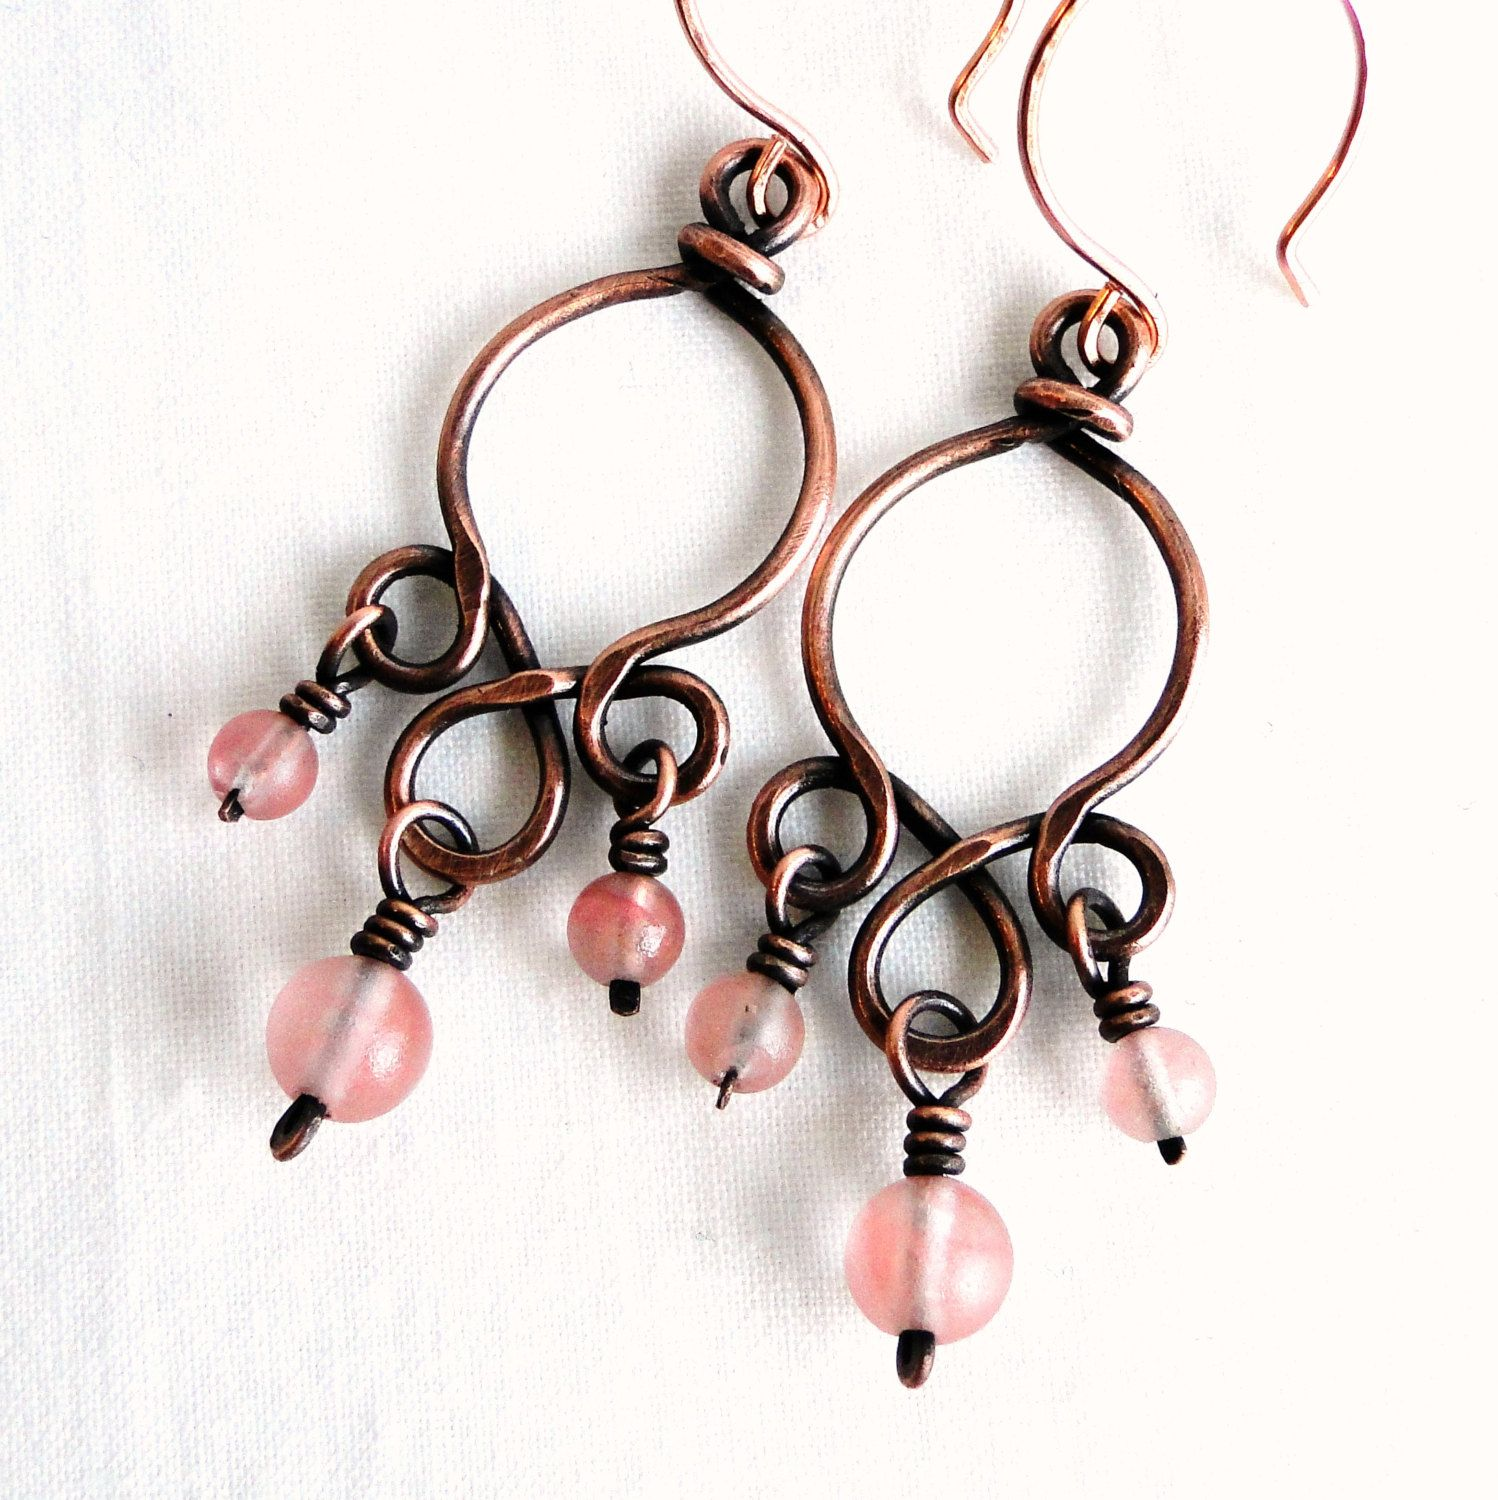 Chandelier Earrings, Pink Glass Beads, Handcrafted Jewelry, Antiqued ...